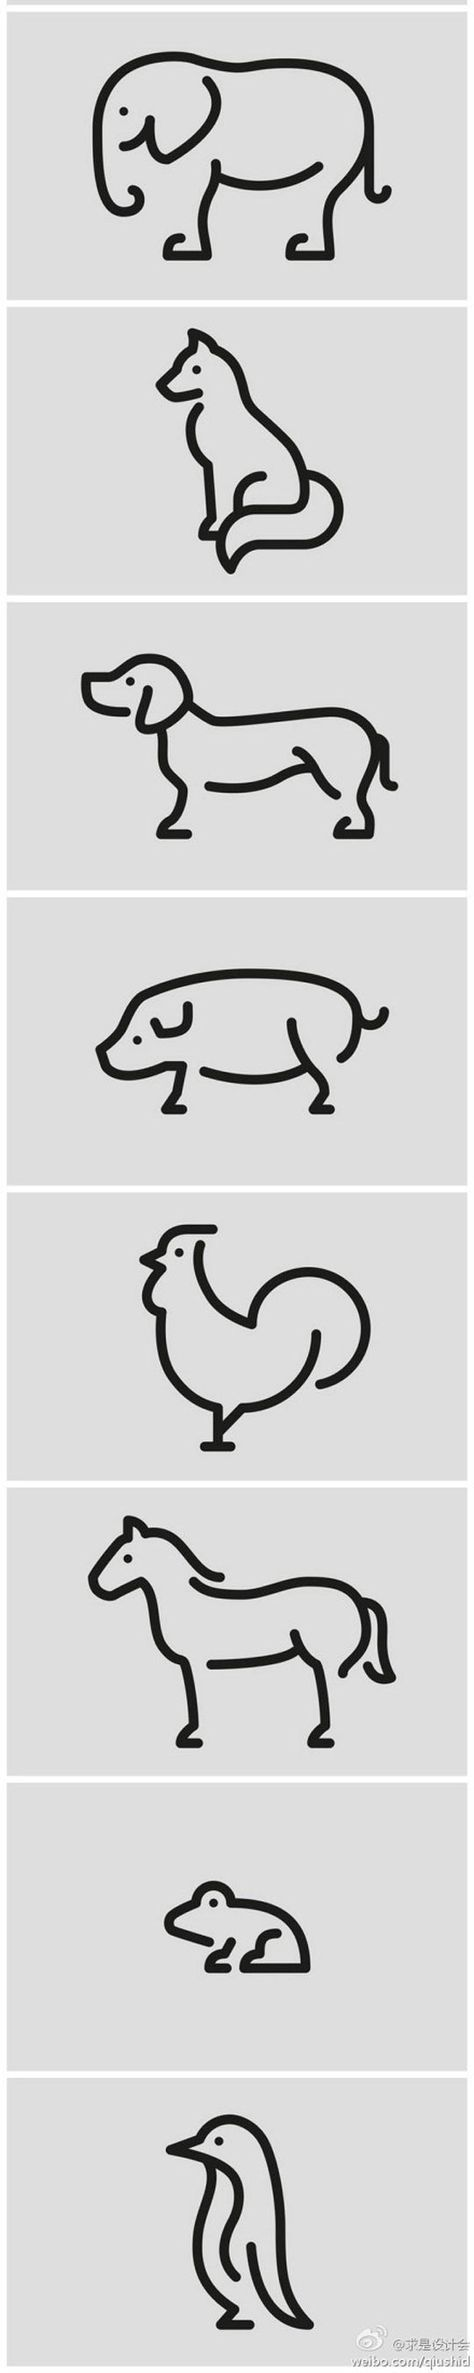 Simple Line Drawings Of Animals : Best ideas about easy stuff to draw on pinterest